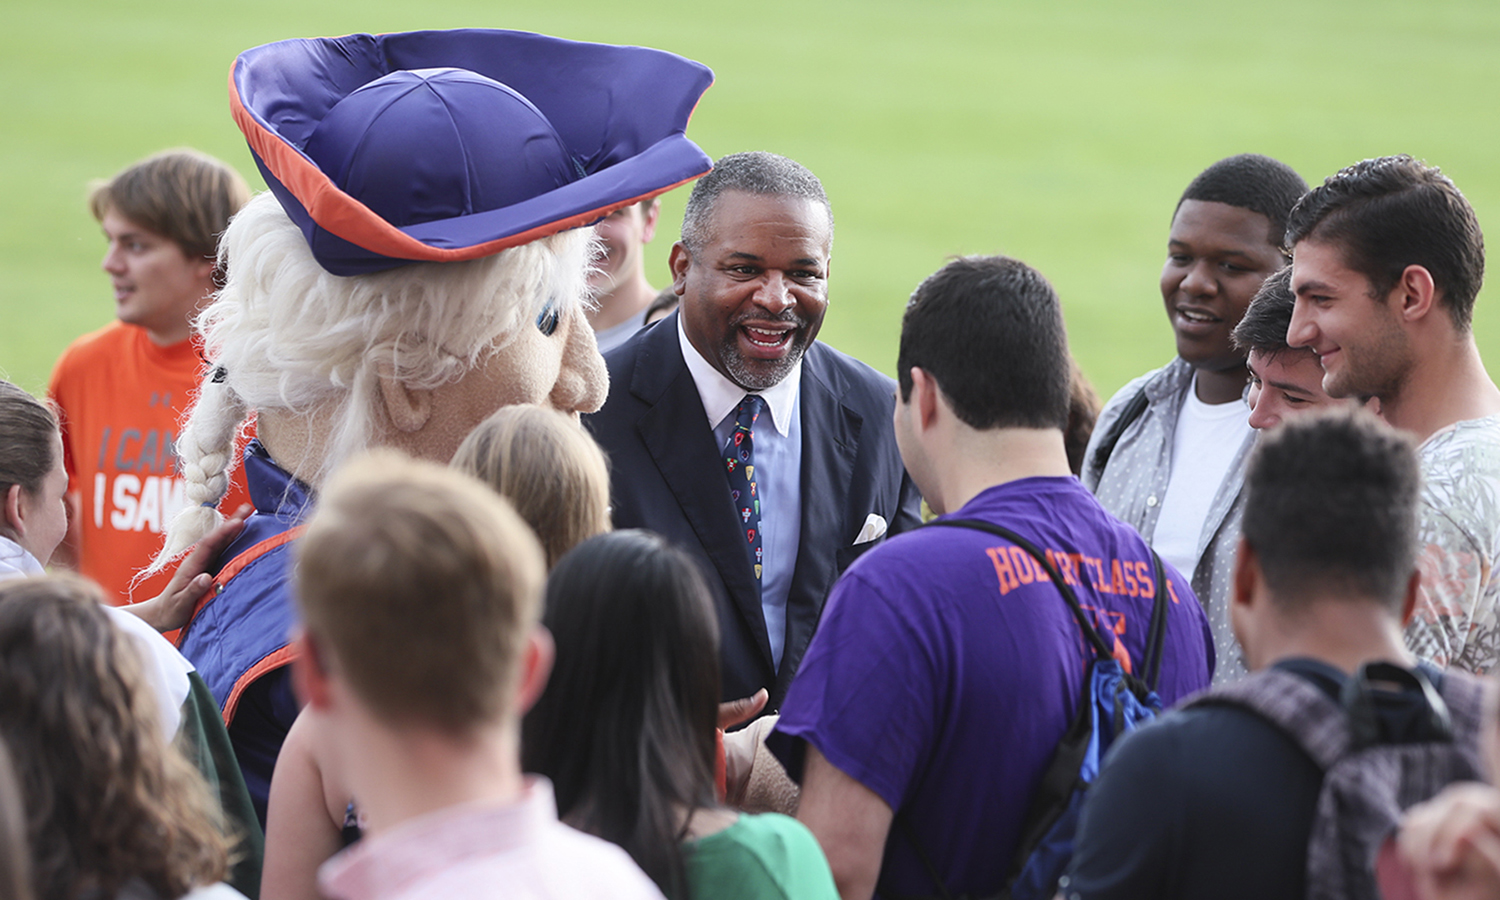 HWS President Gregory J. Vincent '83 greets students outside Coxe Hall during his first day in office.